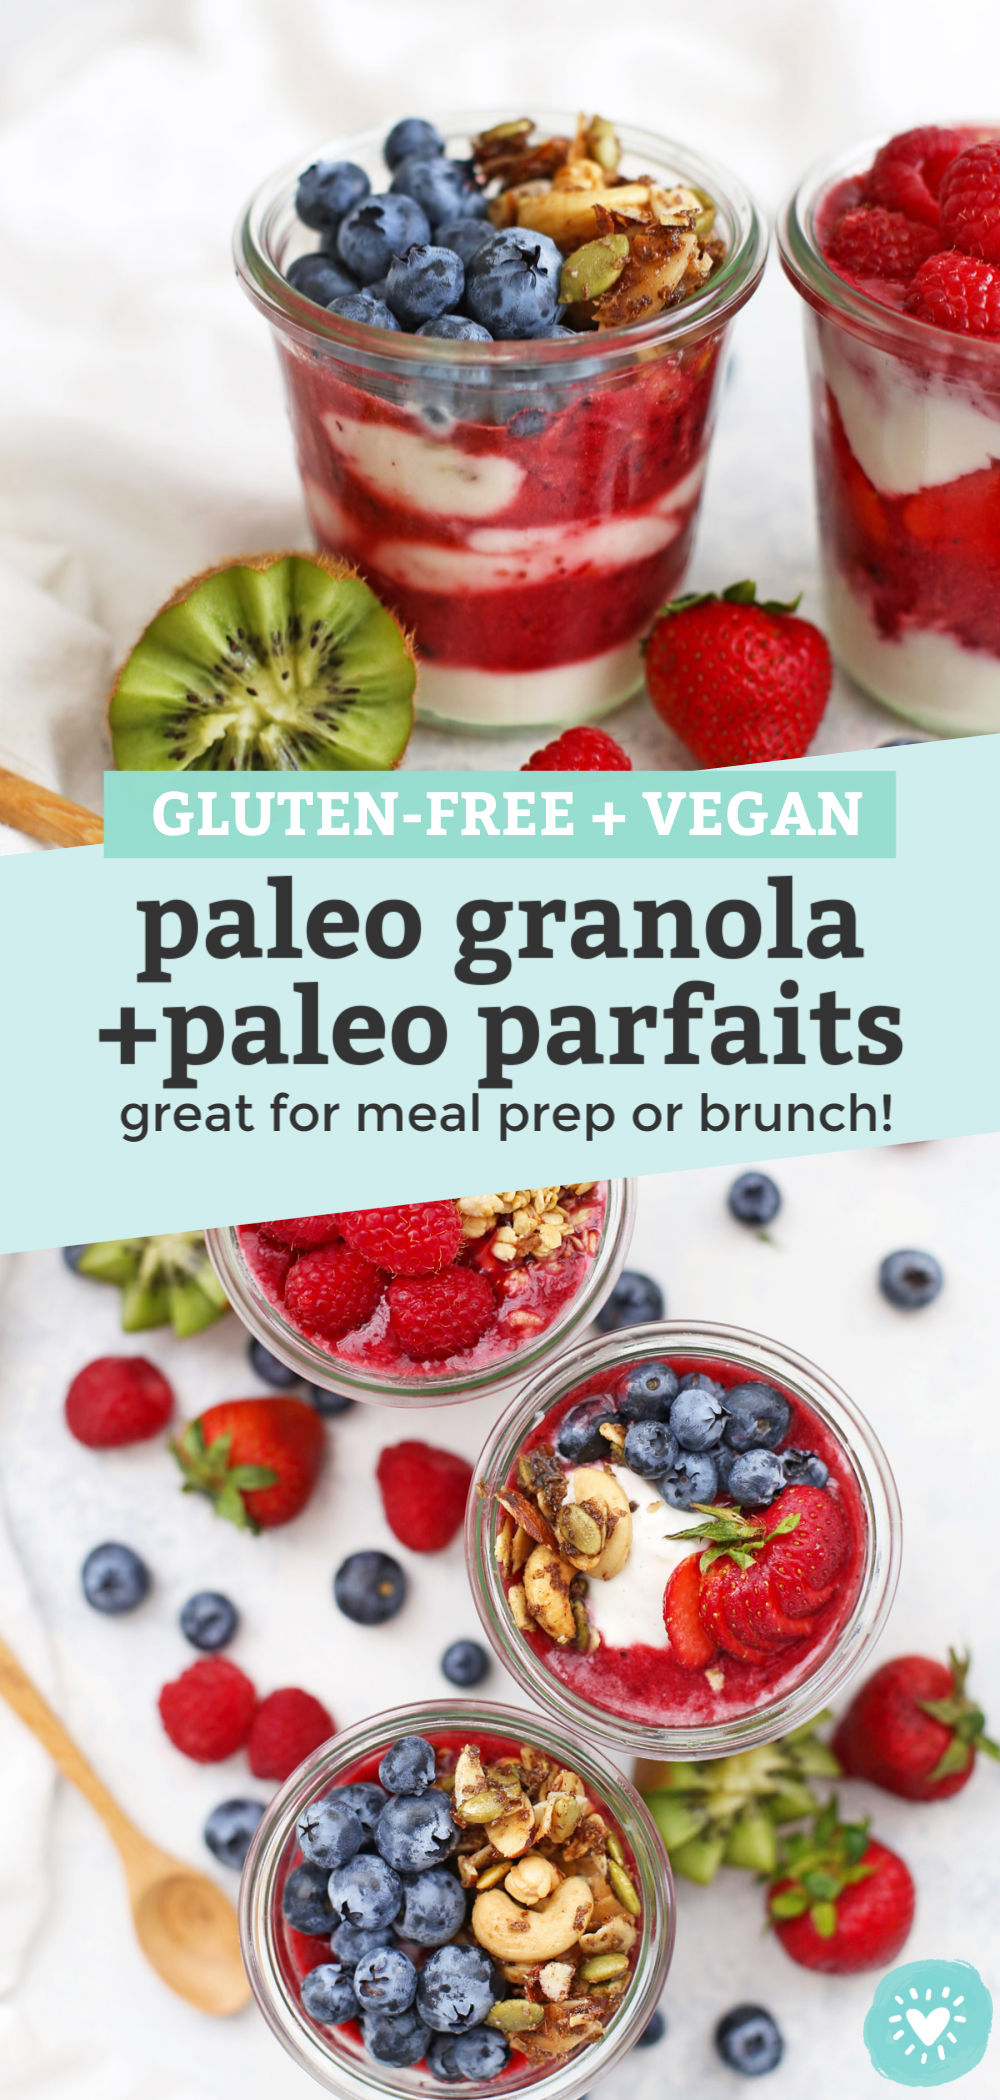 "Collage of images of jars of paleo granola parfats with berry puree, fresh fruit, yogurt, and kiwi with text overlay that reads ""Gluten-Free + Vegan Paleo Granola + Paleo Parfaits--great for meal prep or brunch!"""